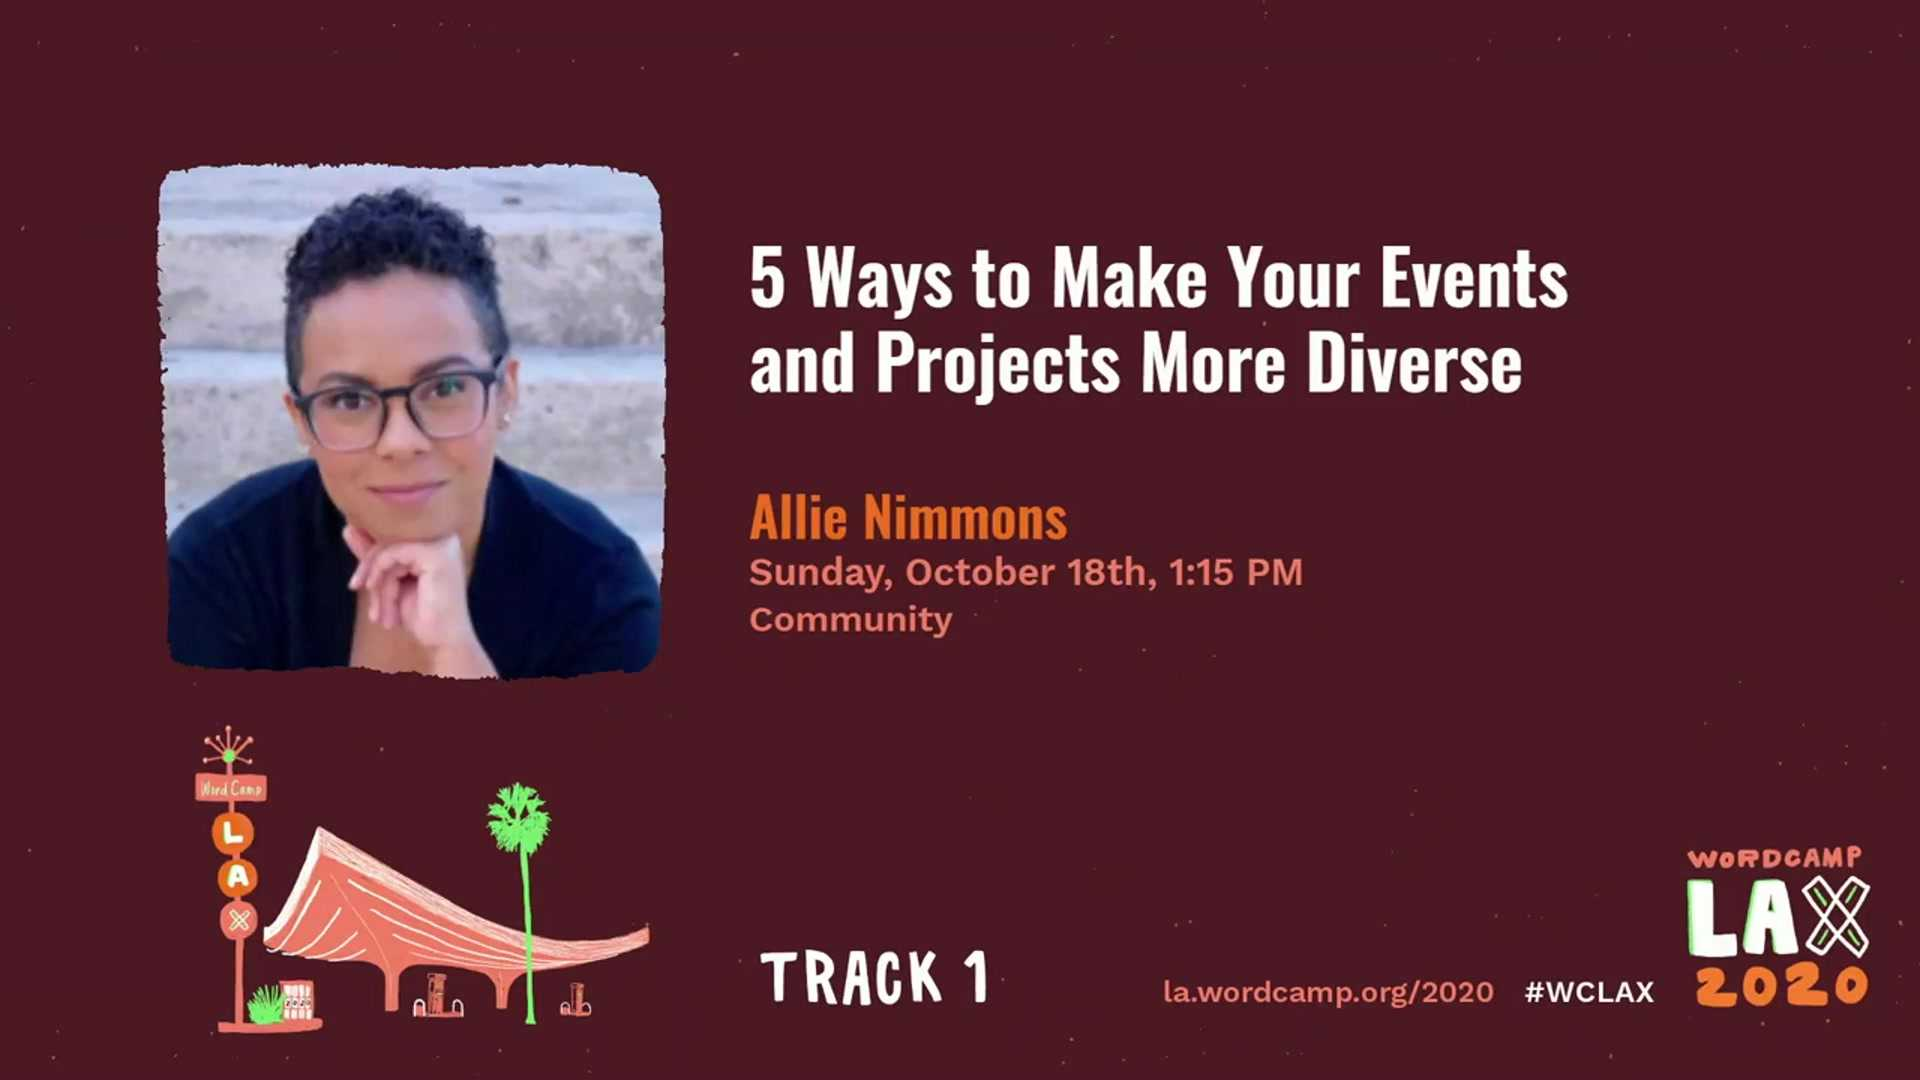 Allie Nimmons: Five Ways to Make Your Events and Projects More Diverse